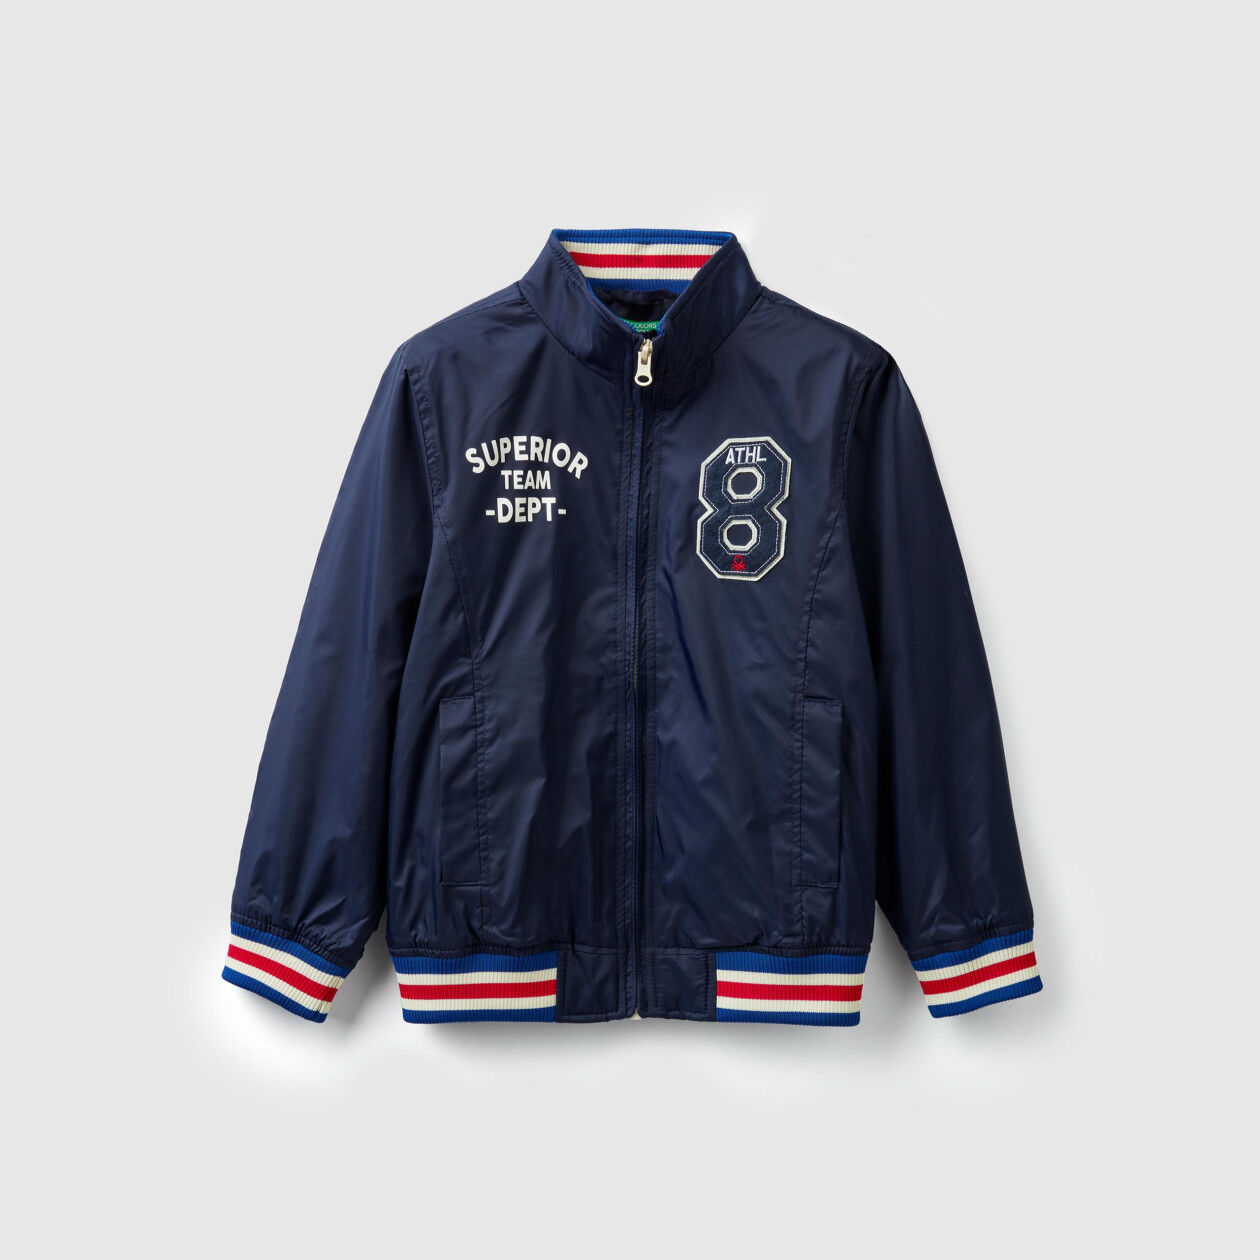 Jacket with patch and zipper